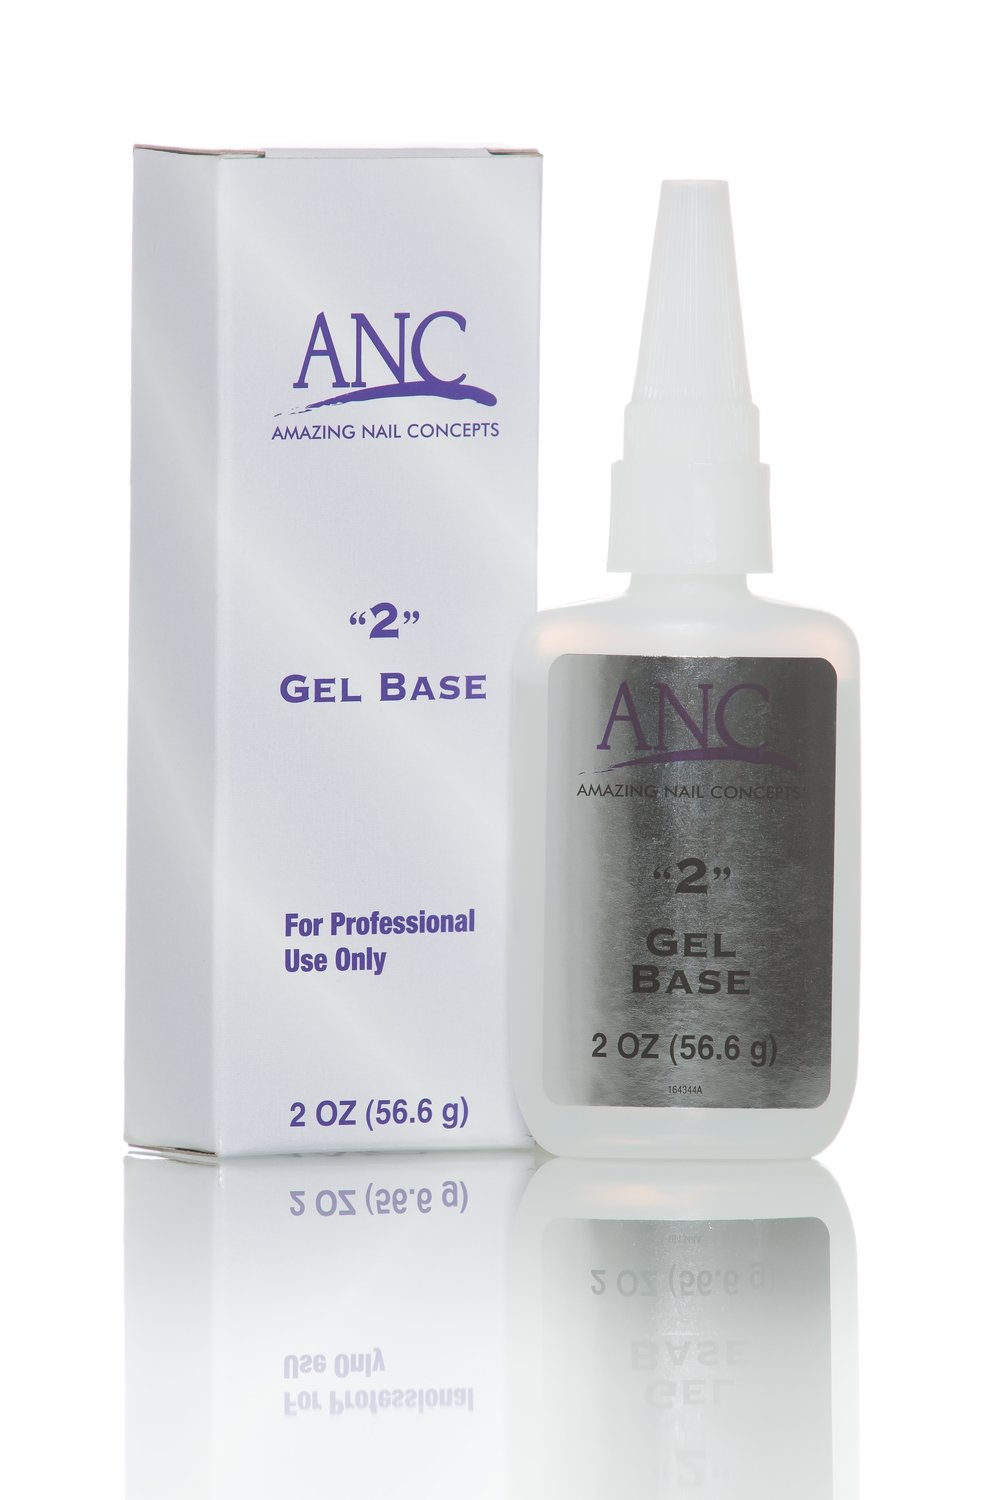 ANC Dip Essential Liquid 2 fl oz Refill - Step #2 GEL BASE